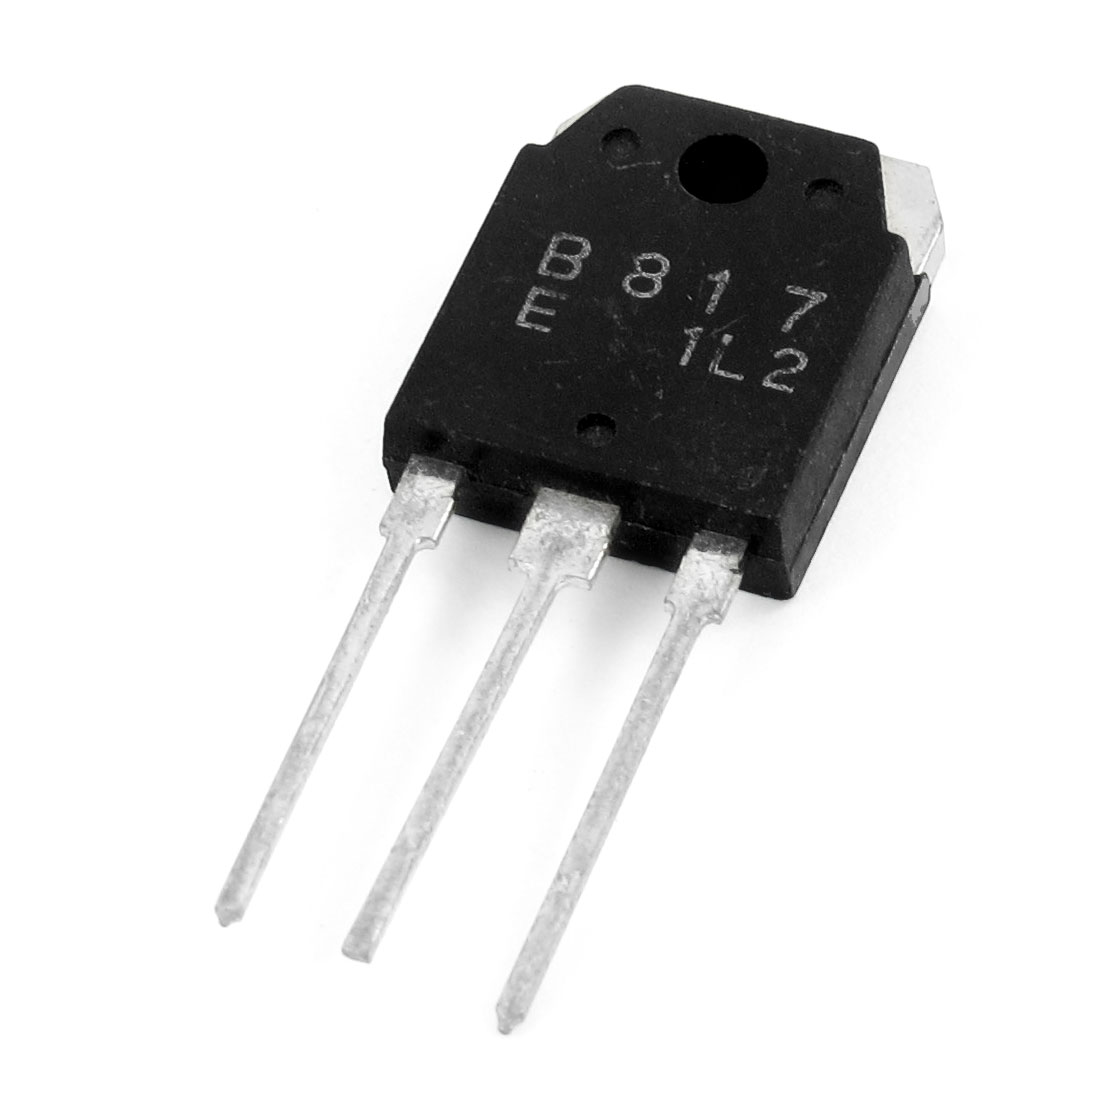 Power Amplifier 140V 12A 3 Pin PNP Transistor 2SB817